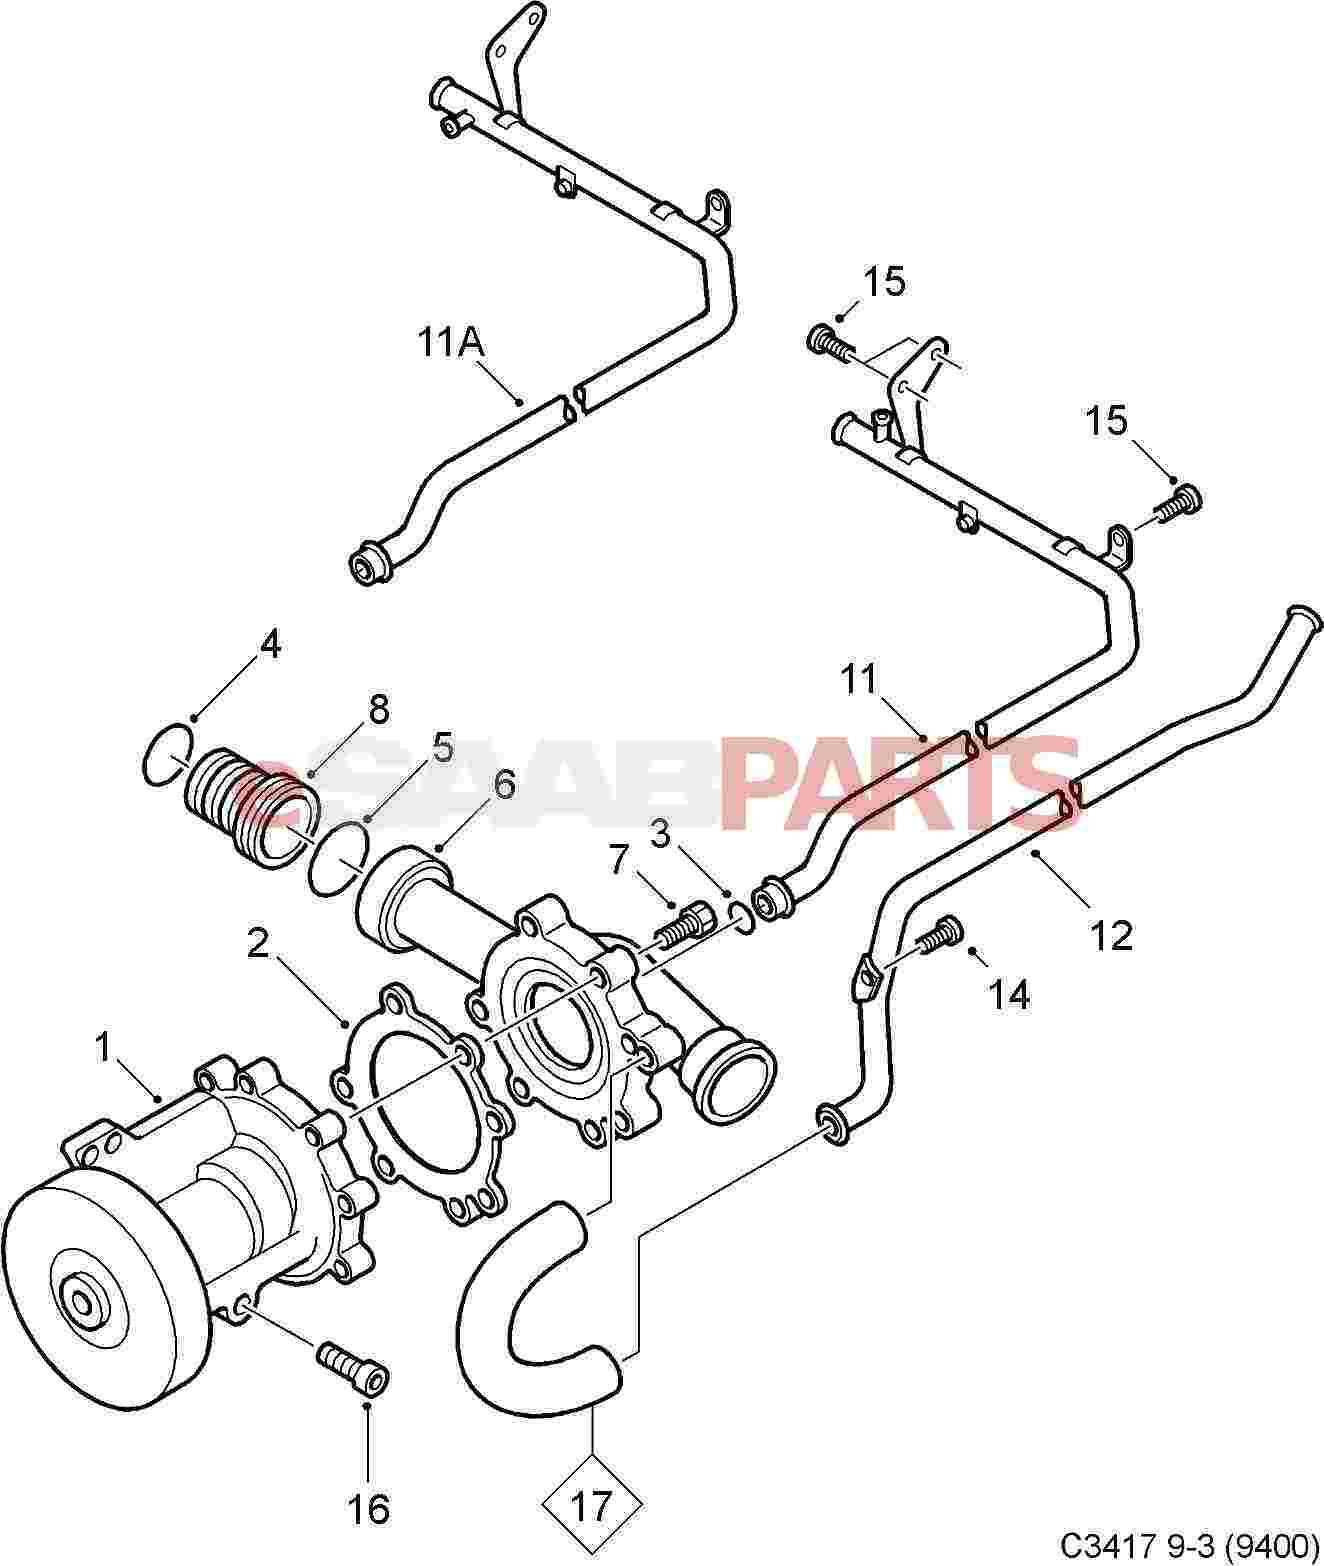 4 9 Cadillac Engine Intake furthermore Ford 3 5l Engine Bank 1 in addition Showthread additionally 48px0 Chevrolet Silverado 1500 Knock Sensor Located together with 2003 Saab 9 3 Convertible Parts Diagram. on crankshaft sensor location saab 9 5